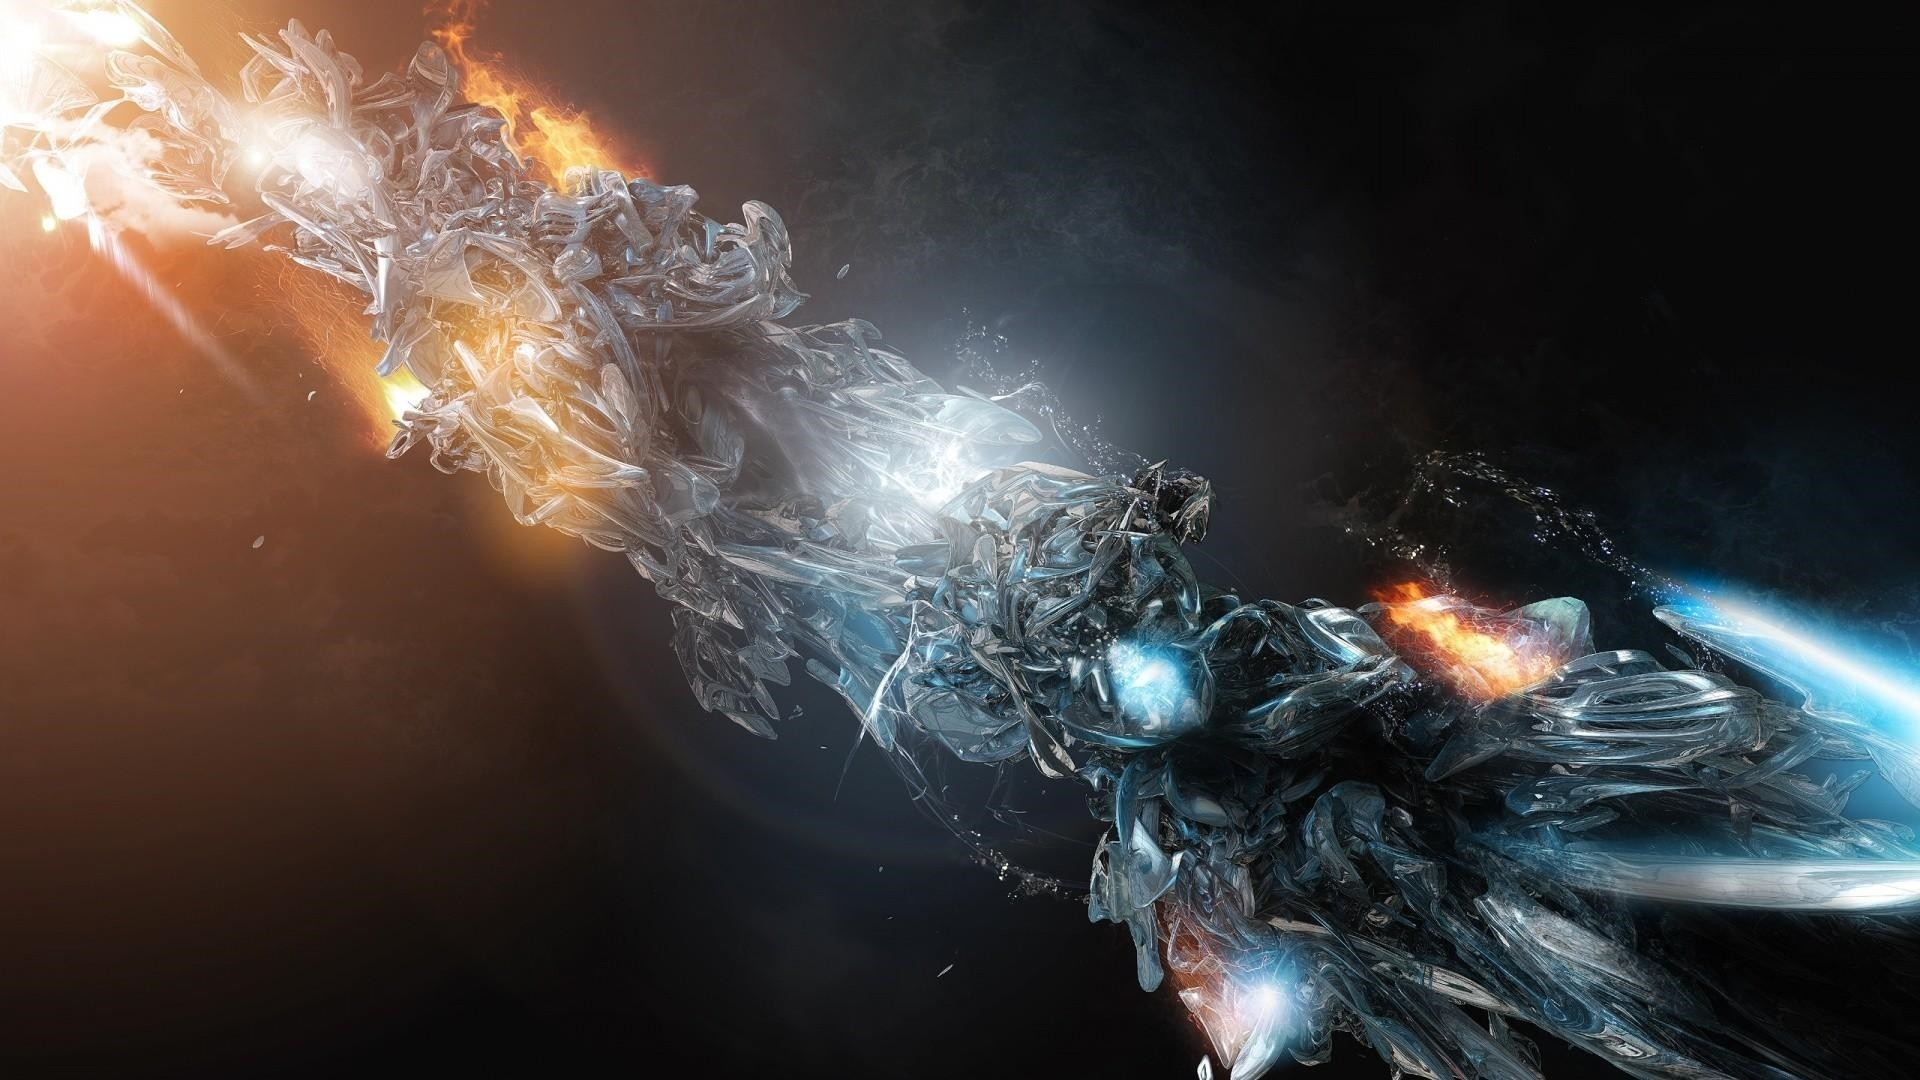 Fire And Ice Image